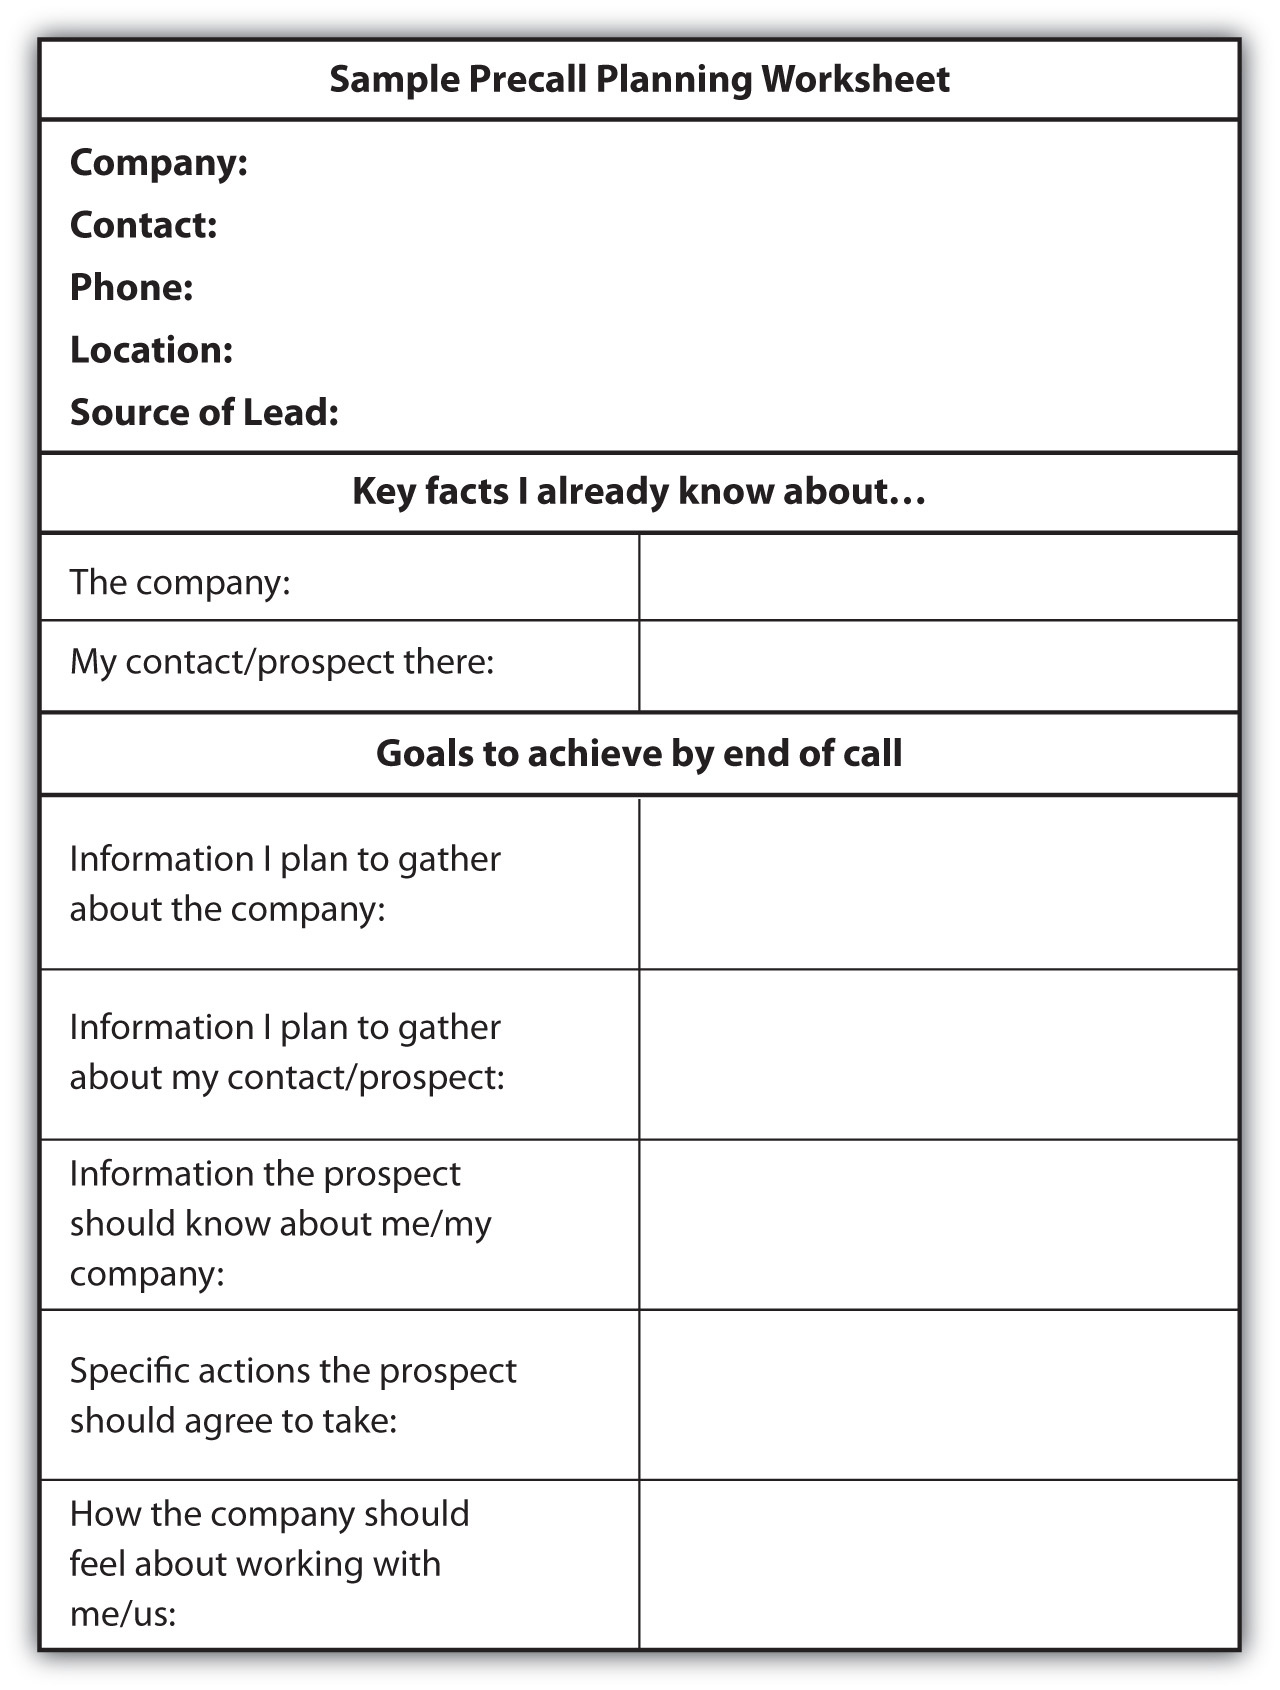 Printables Sales Call Planning Worksheet the preapproach power of preparation figure 8 1 precall planning worksheet